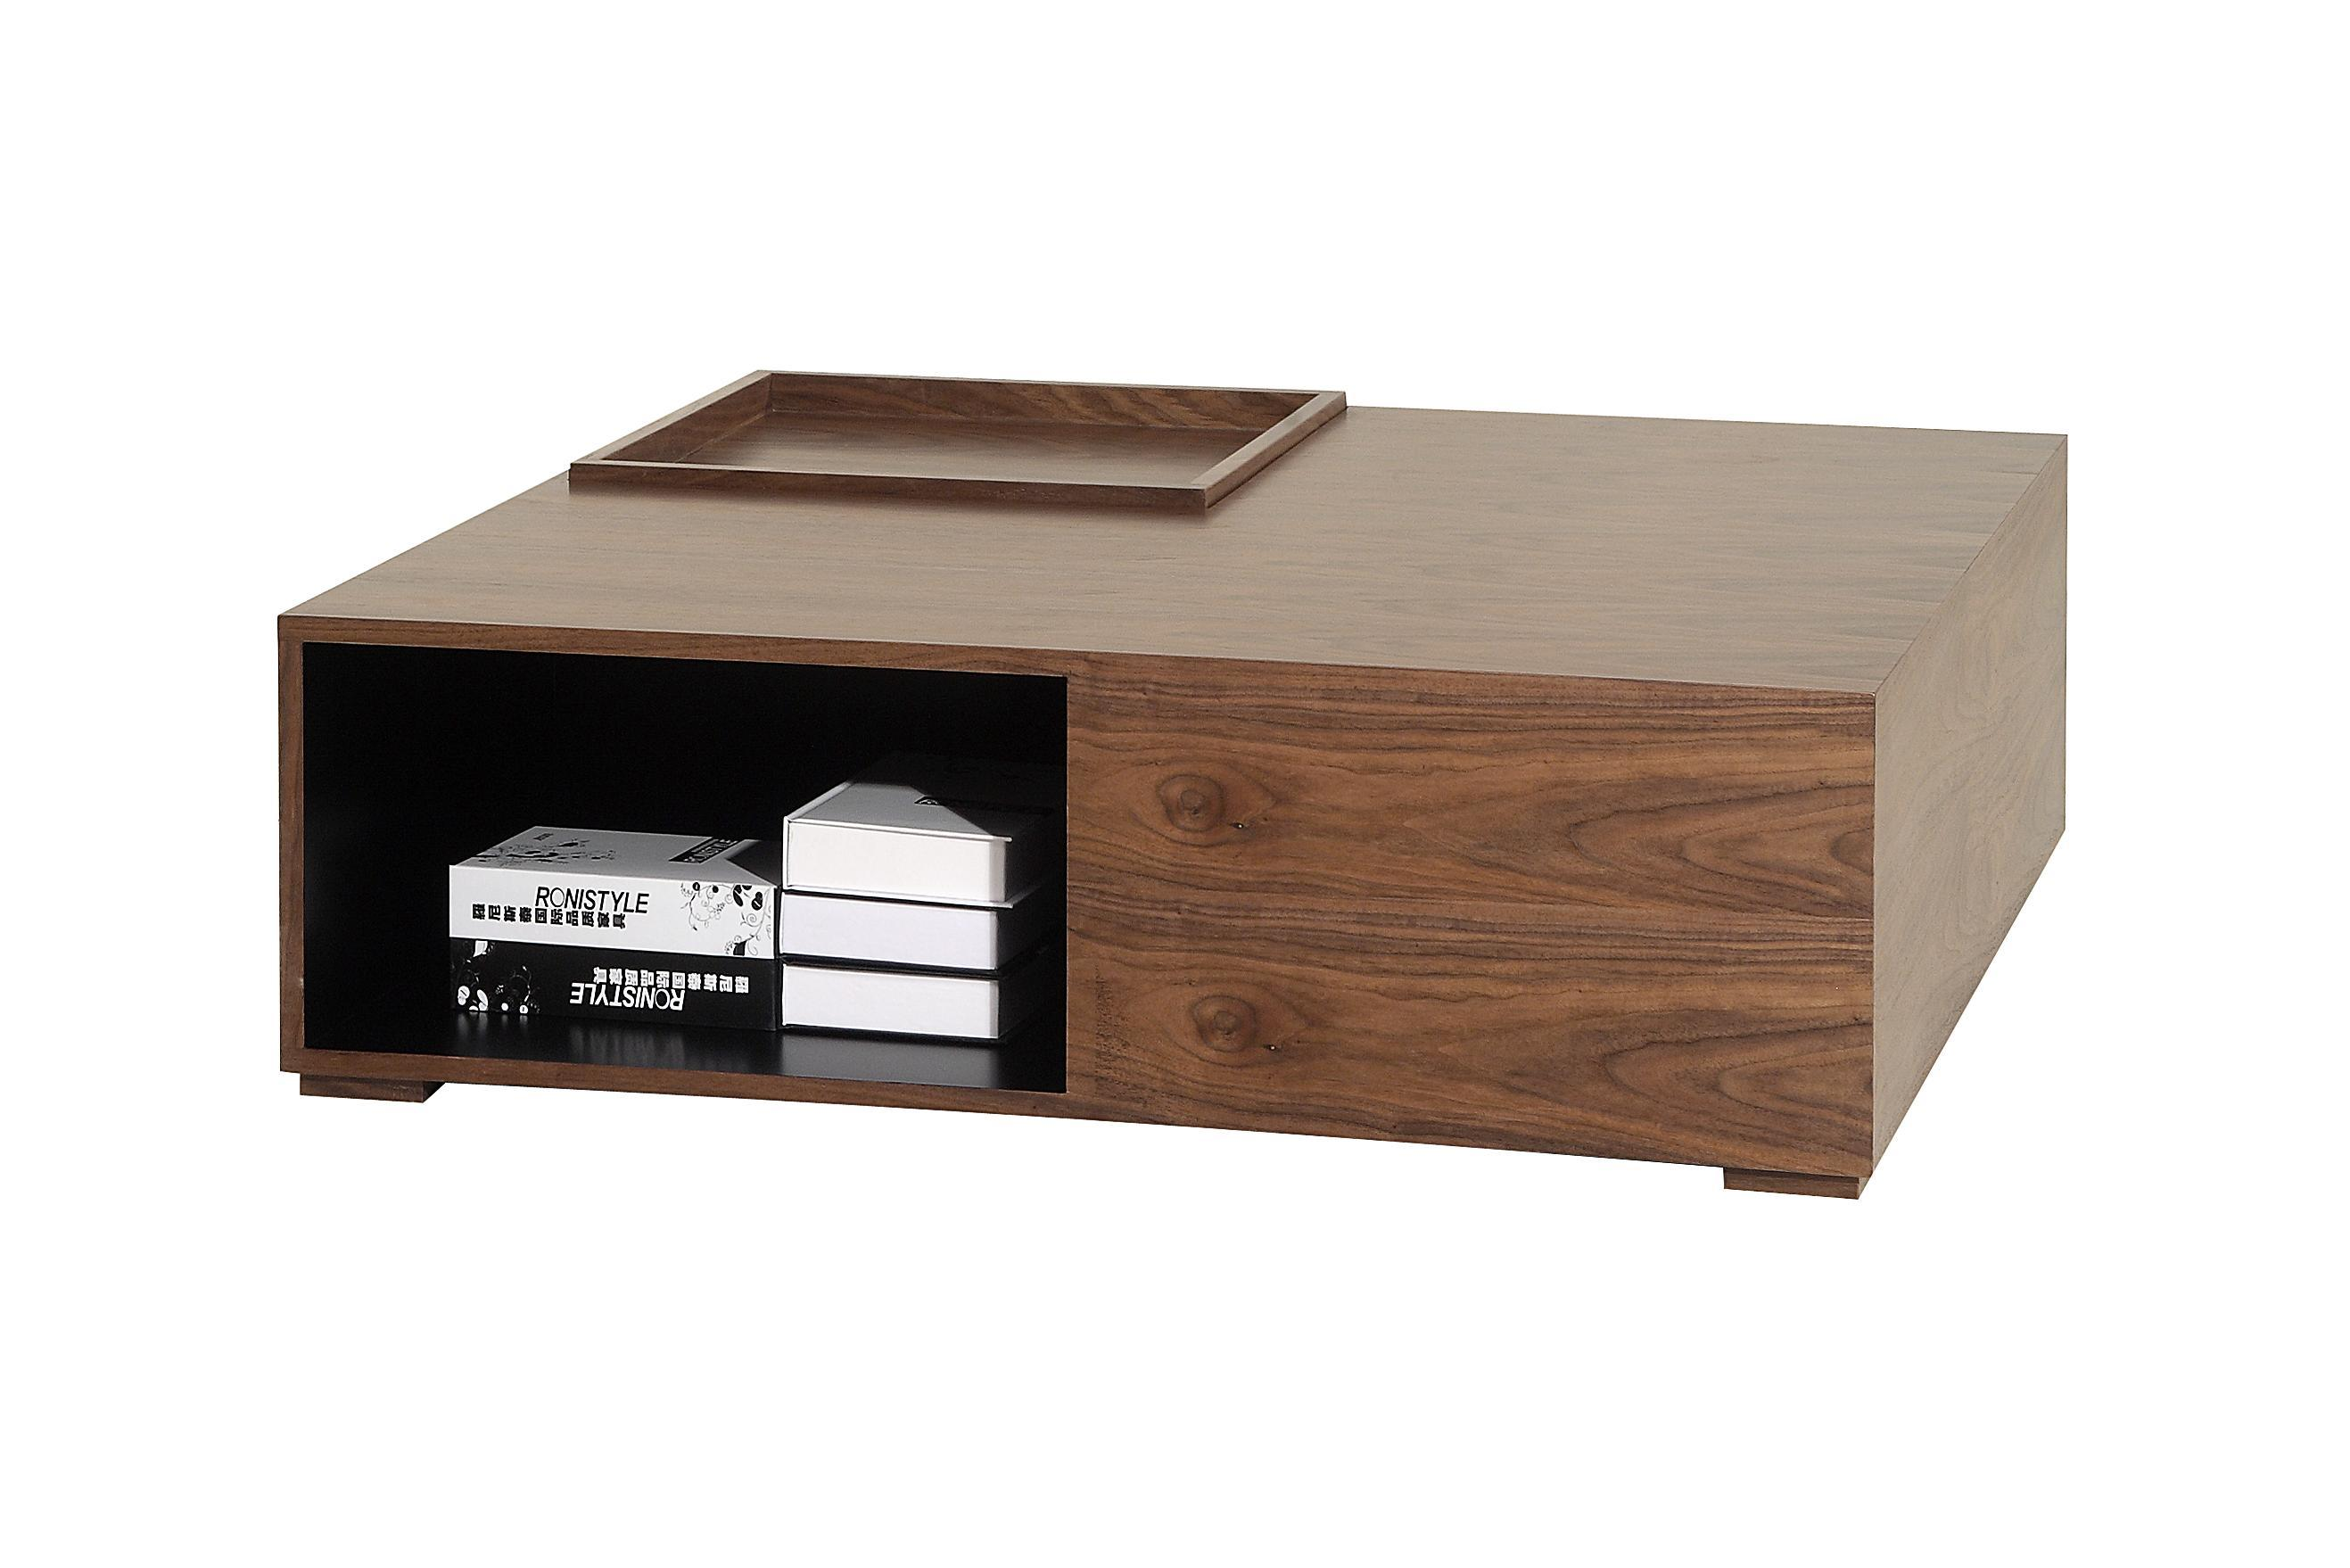 Table basse en bois moderne de qualit lcj 042 table for Table basse moderne bois